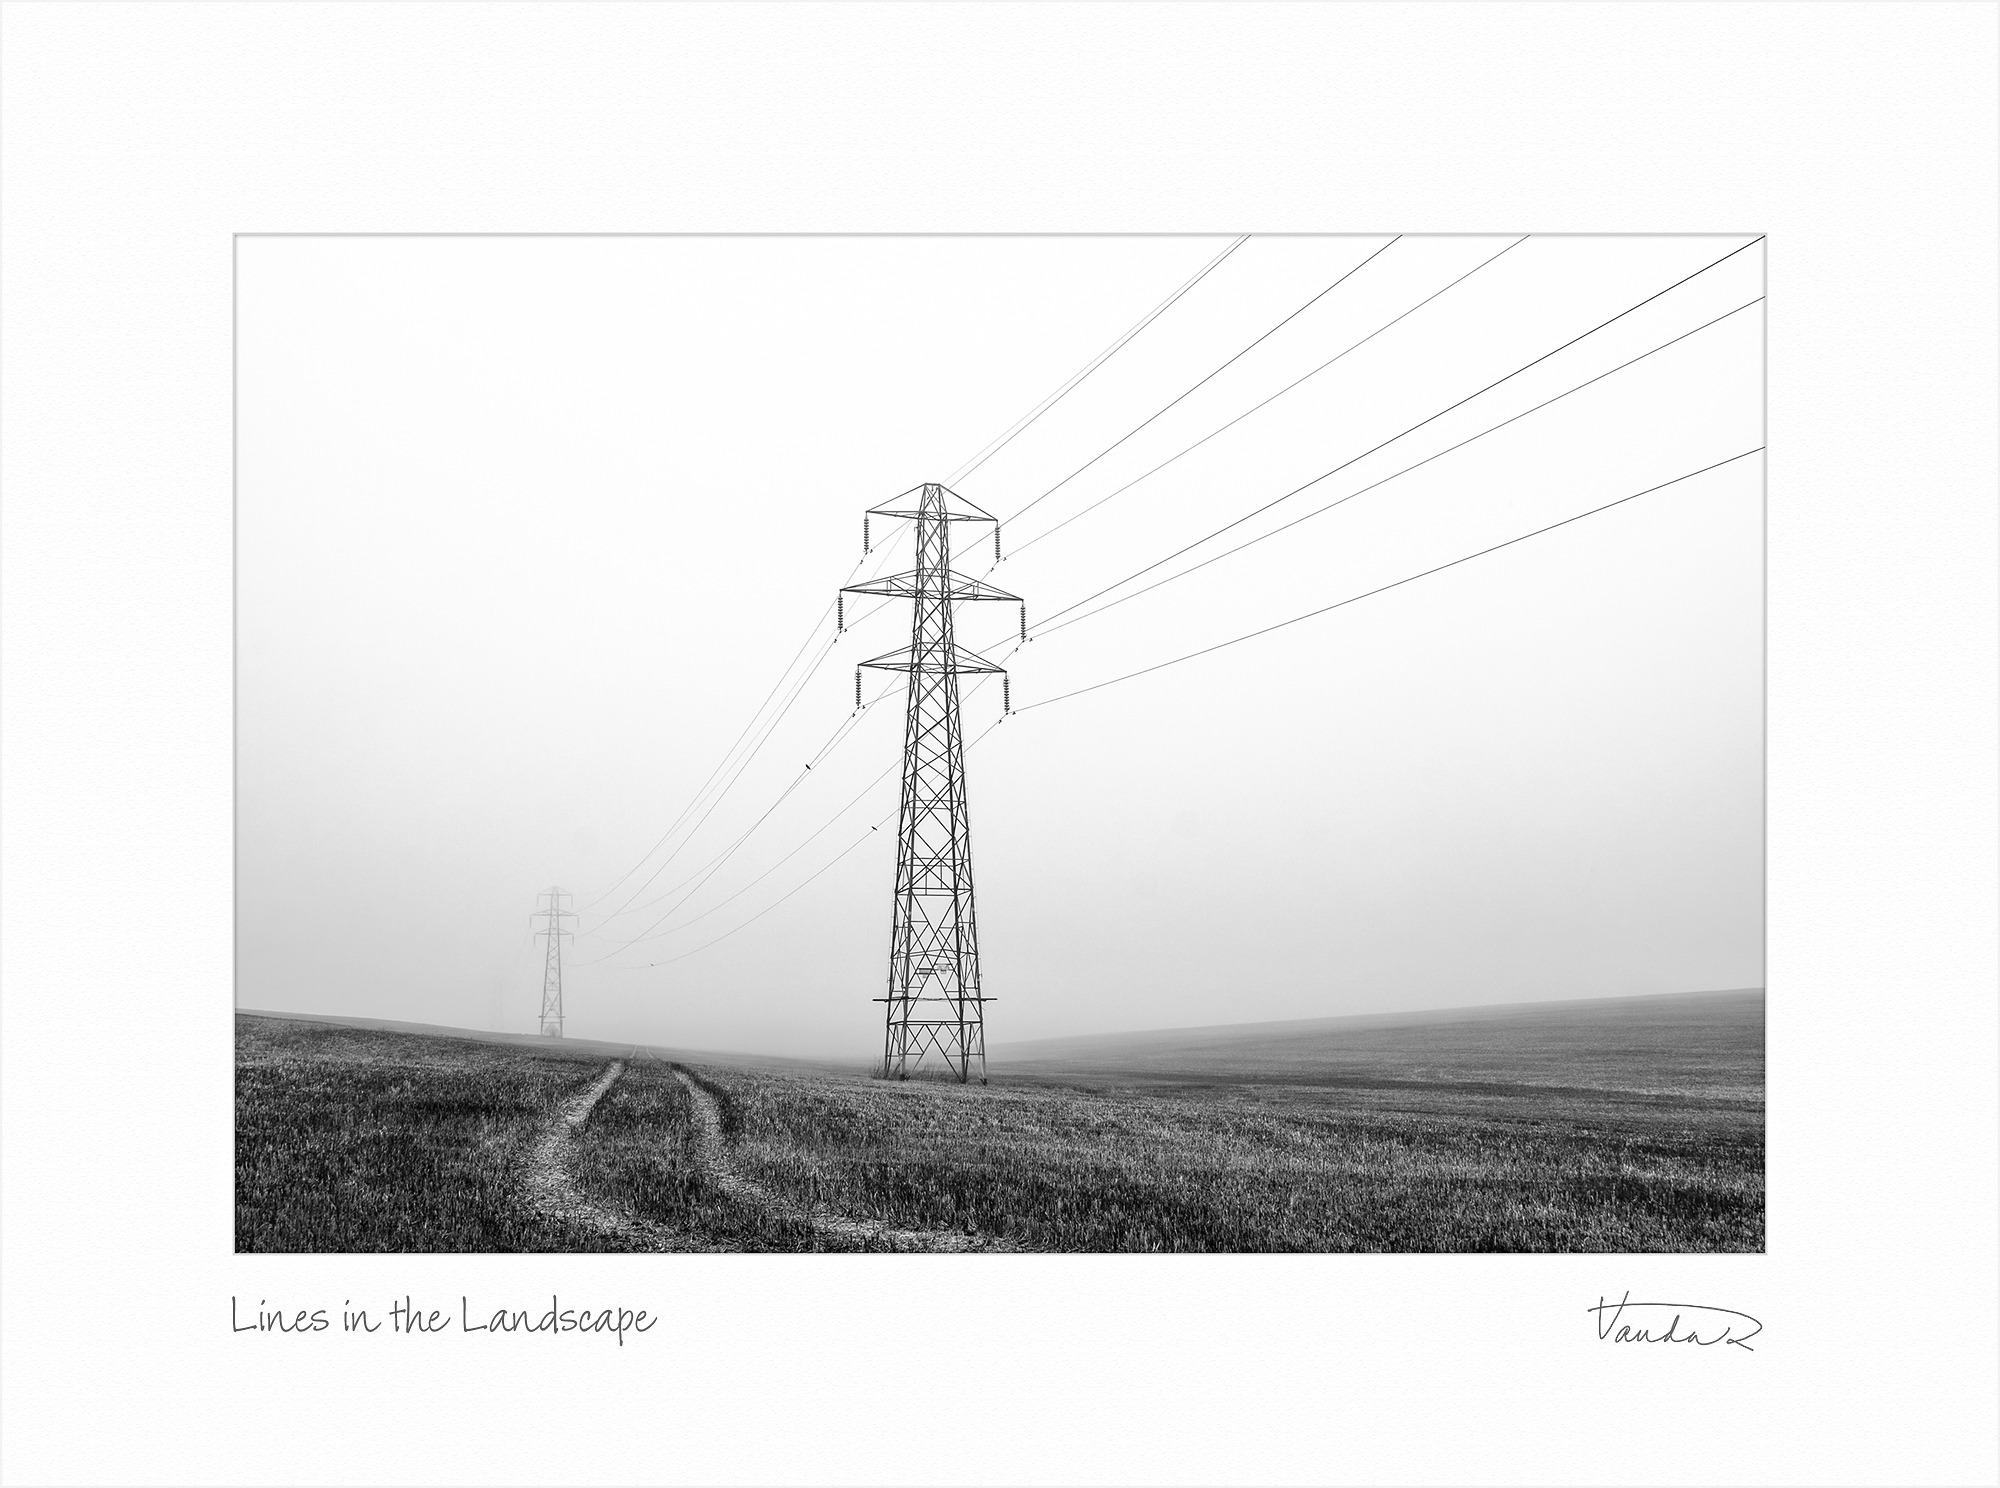 Lines in the Landscape